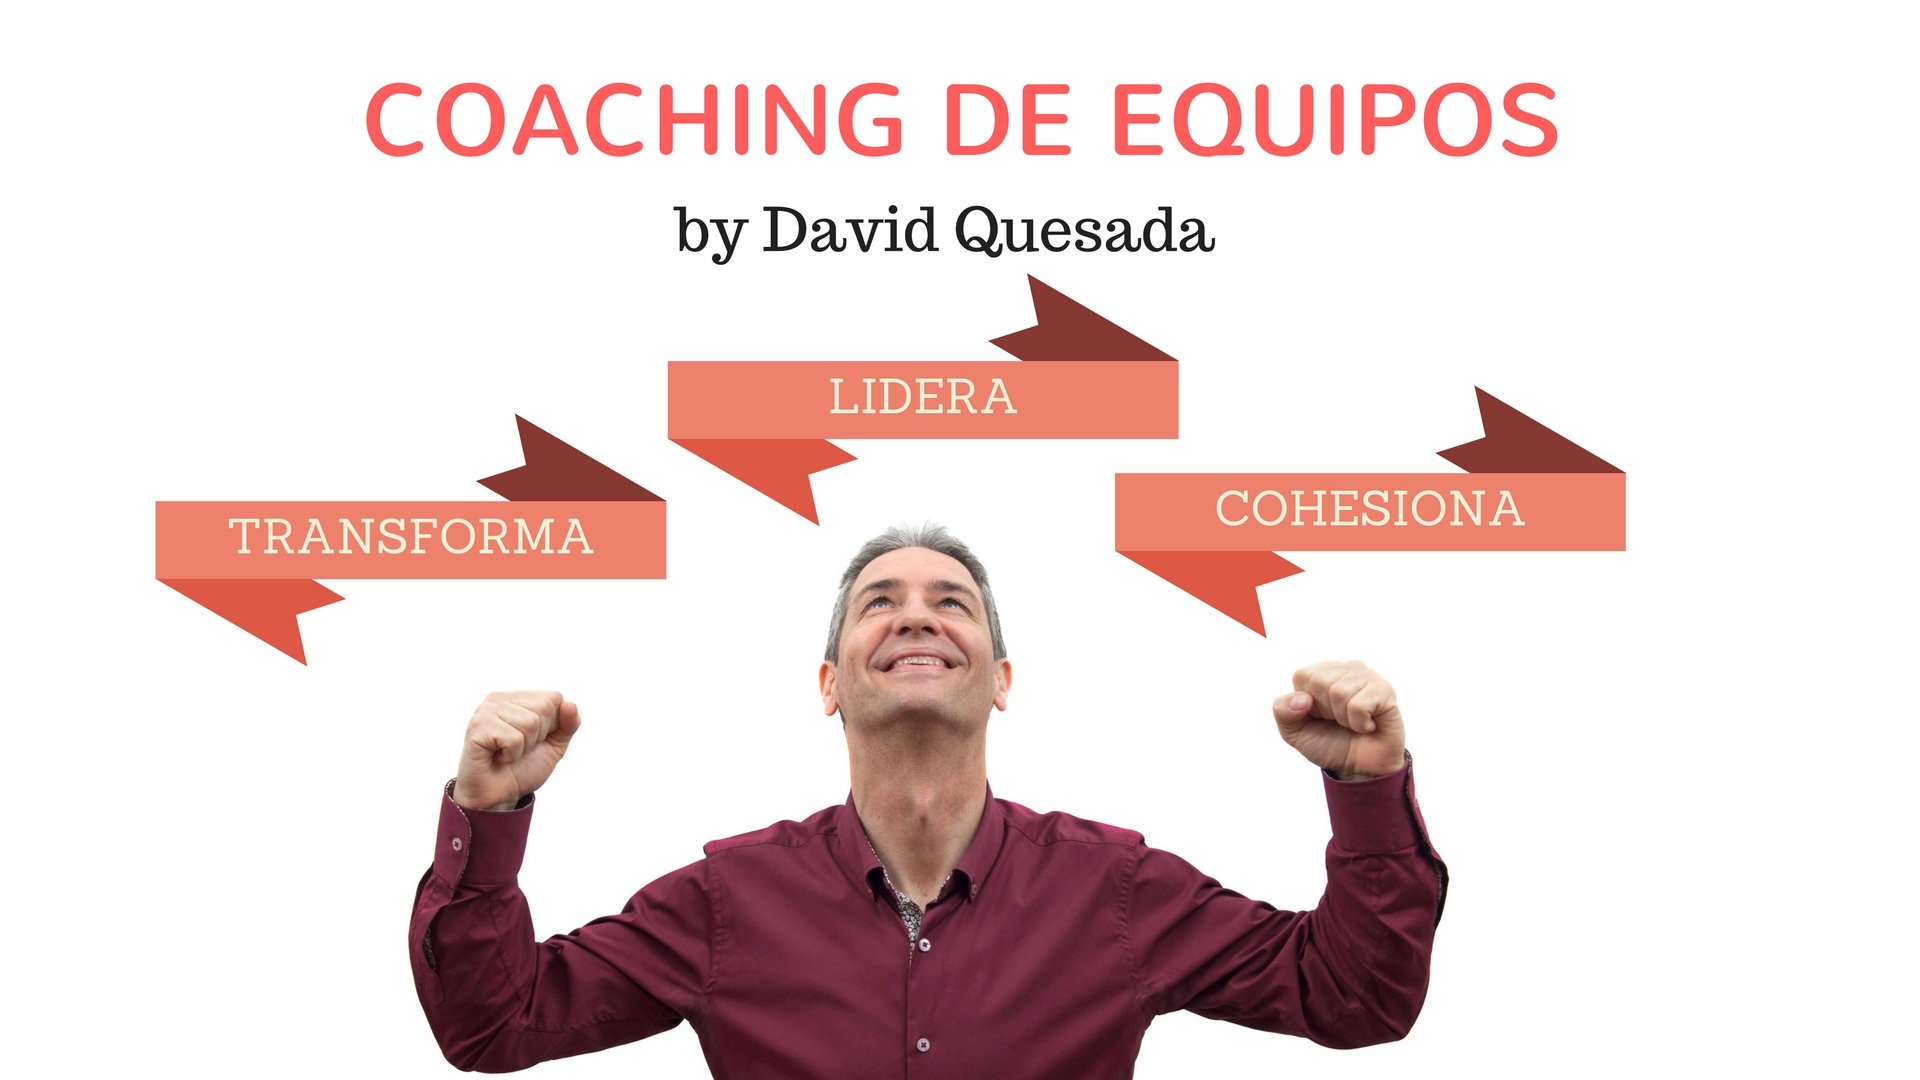 Coaching de Equipos by David Quesada